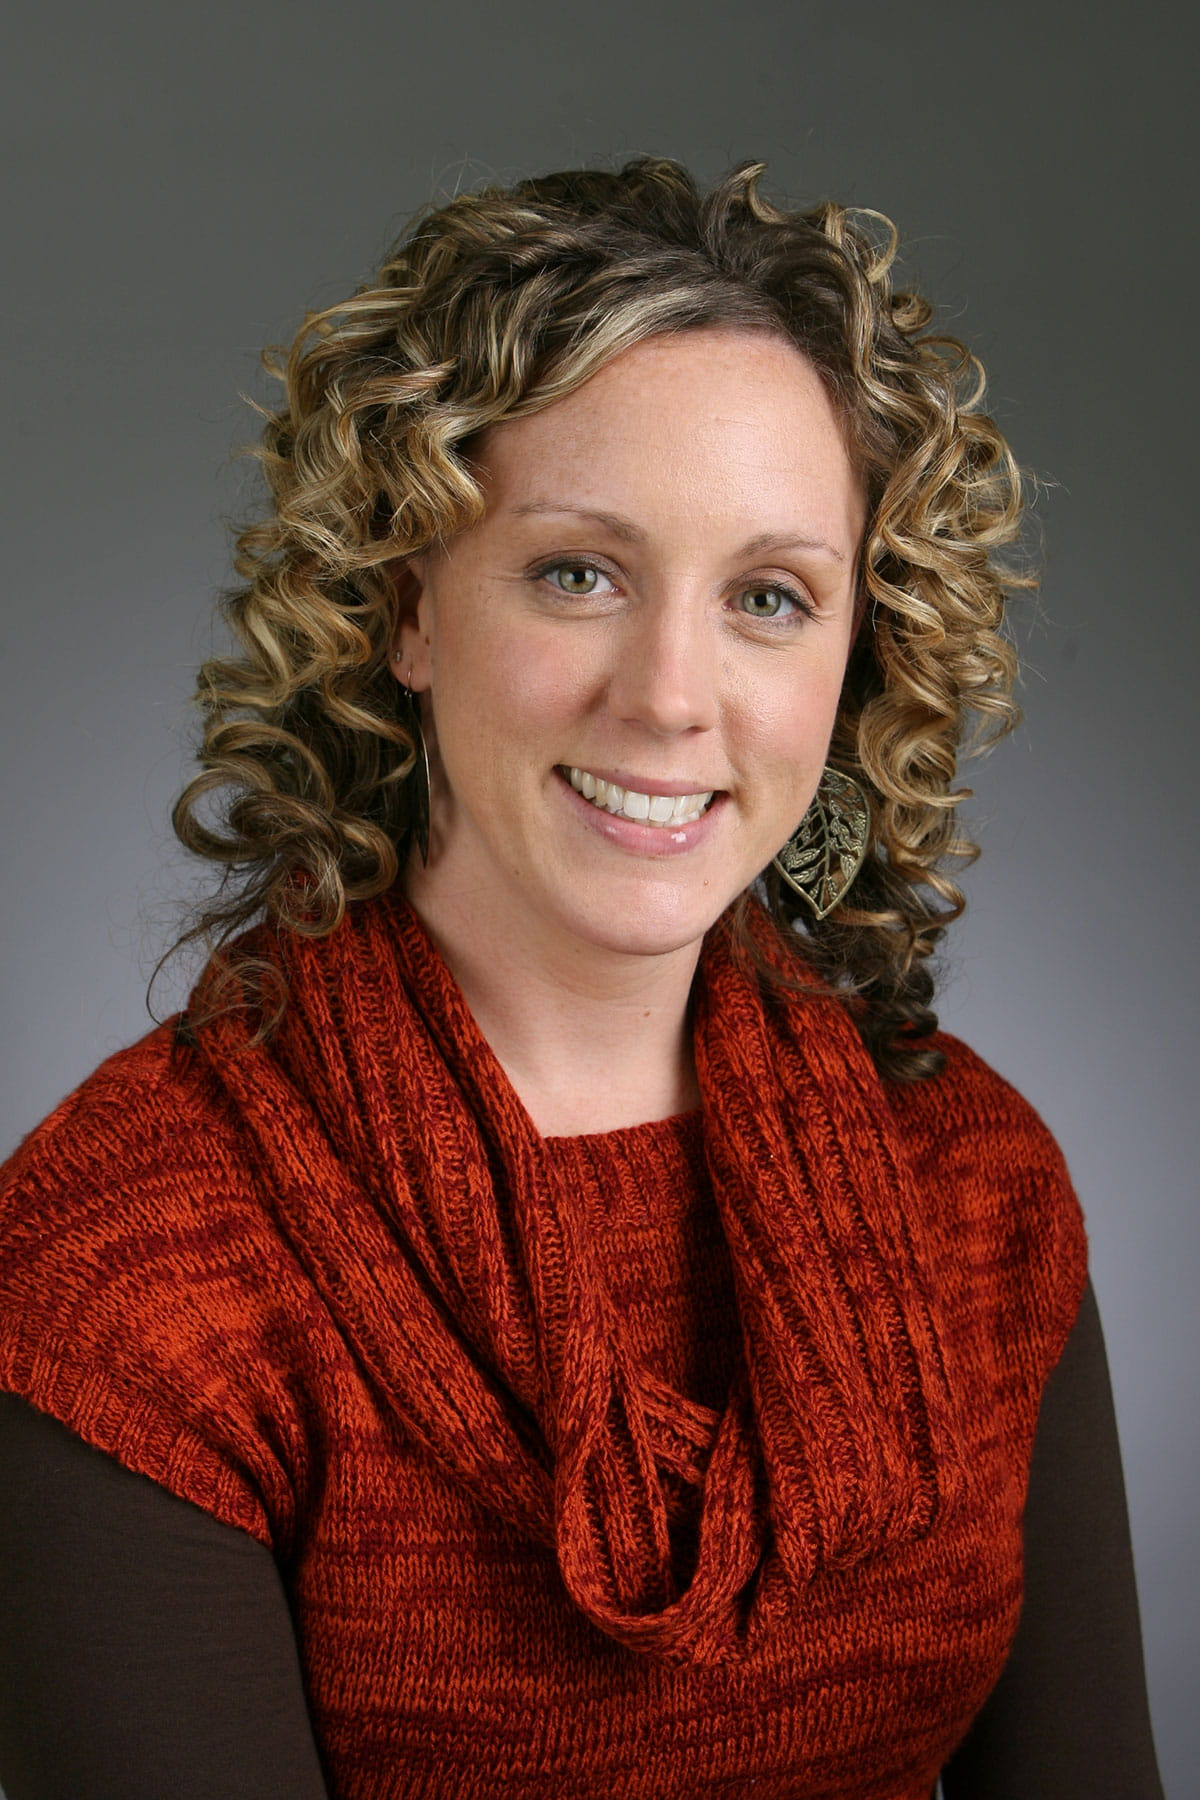 A photo of Heather Reffitt.